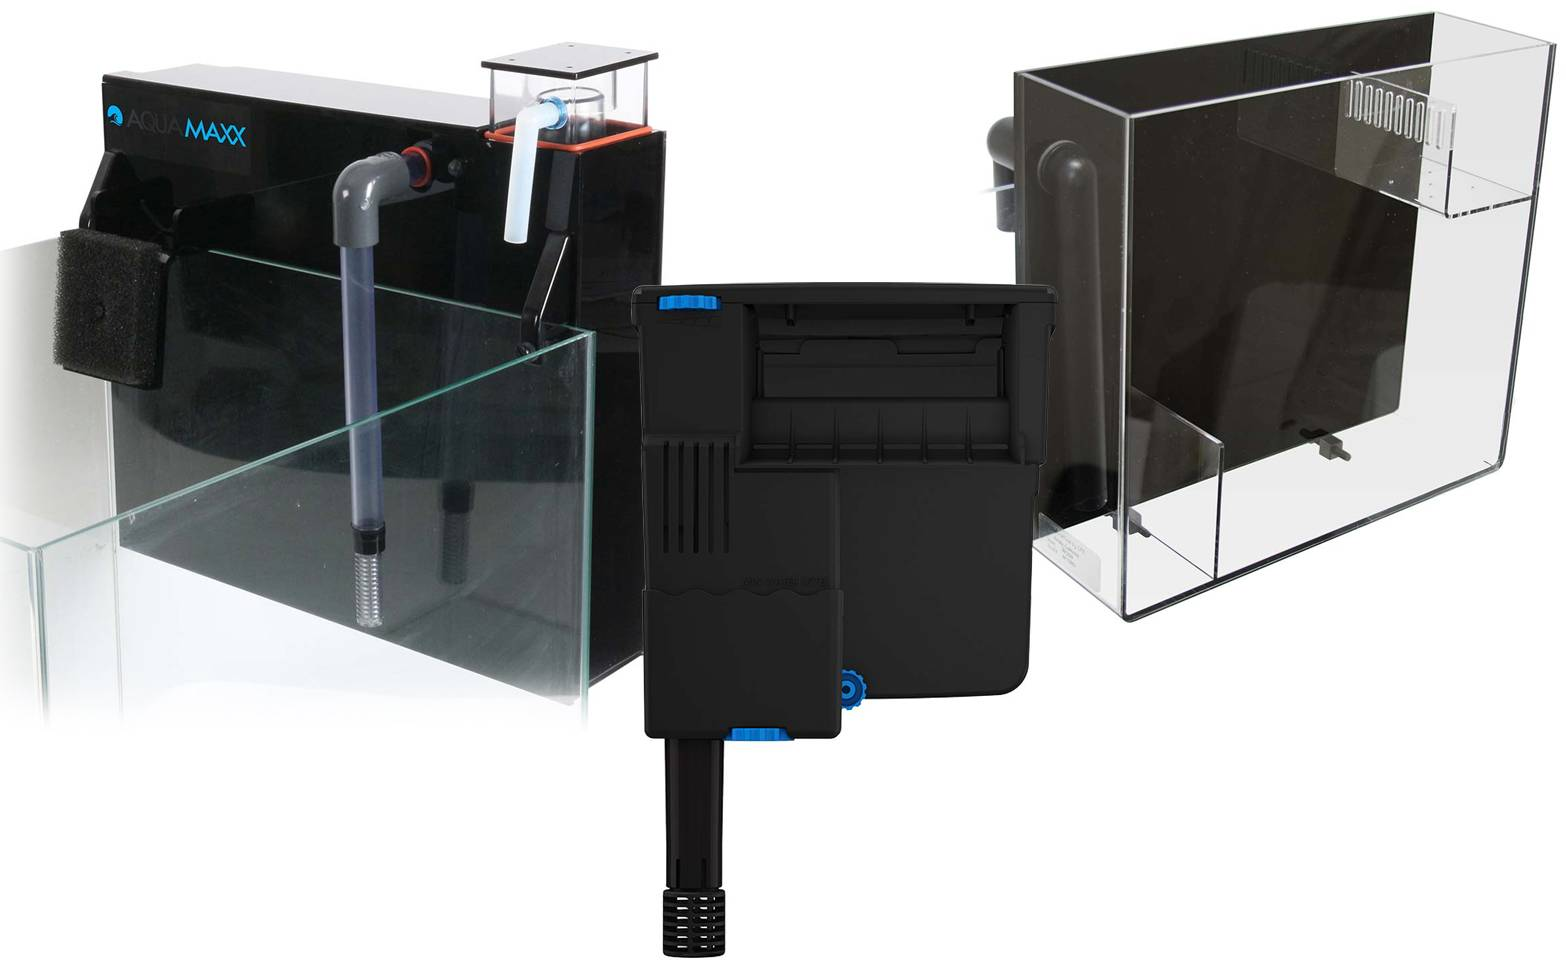 hang on filtration options from a multifilter, power filter and hang on refugium